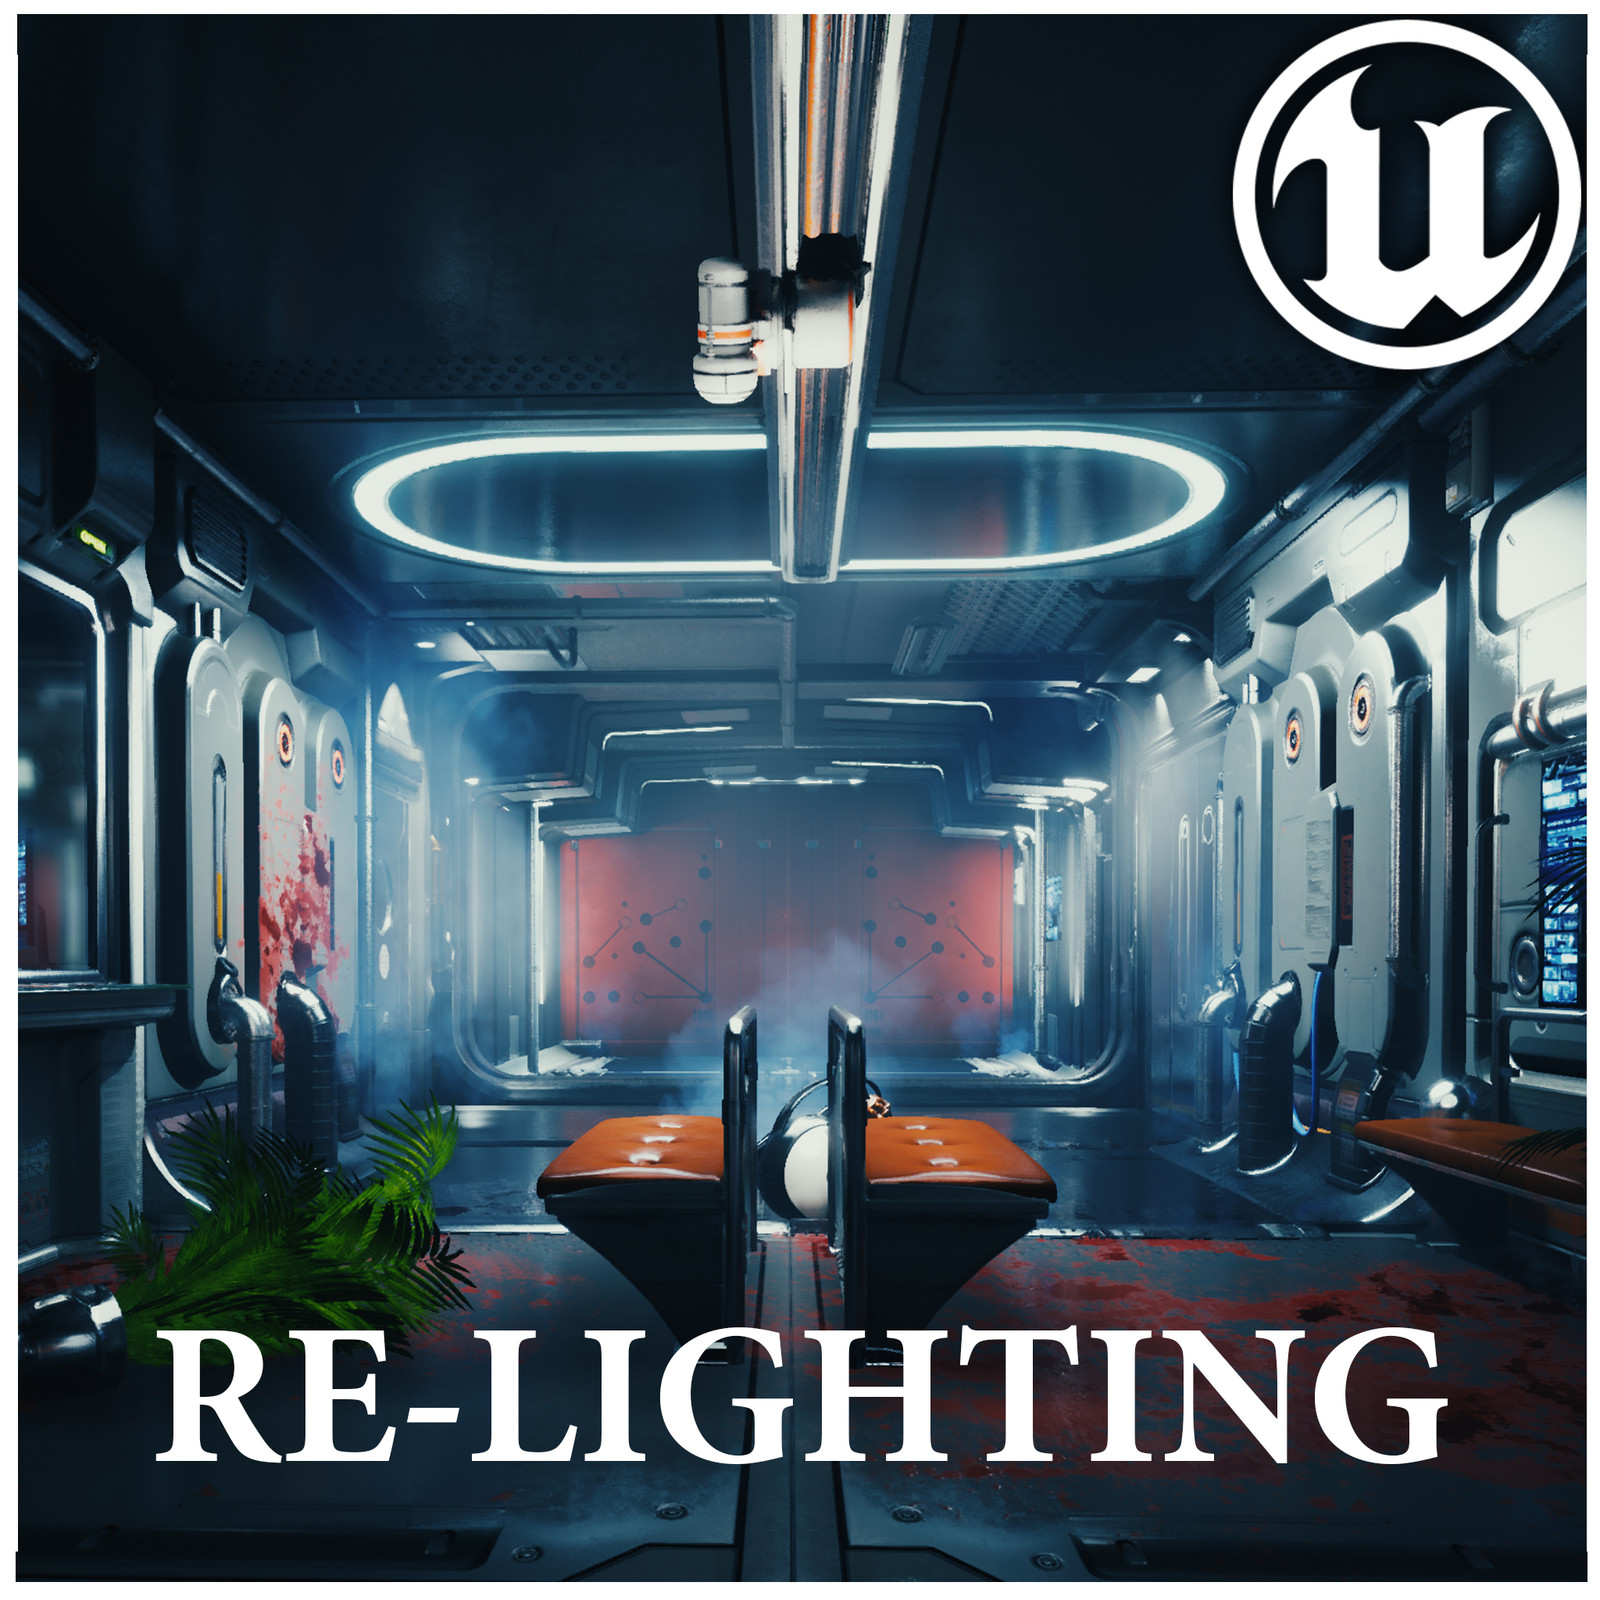 UE4 PREY Style Lighting | Wiktor Öhman's Deus Ex Corridor Relight